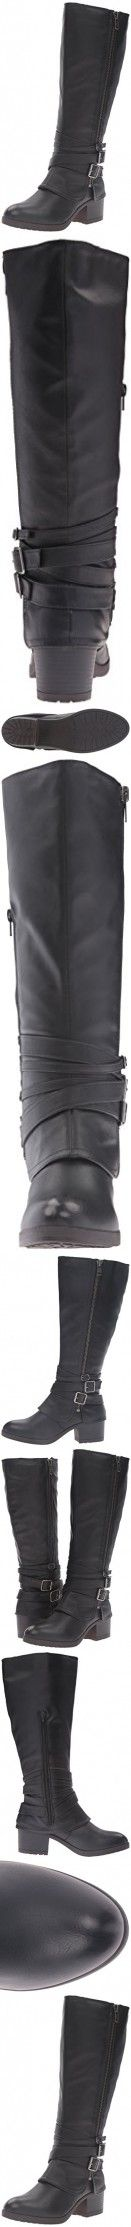 Madden Girl Women's Ratewc Wide Calf Riding Boot, Black Paris, 8.5 M US